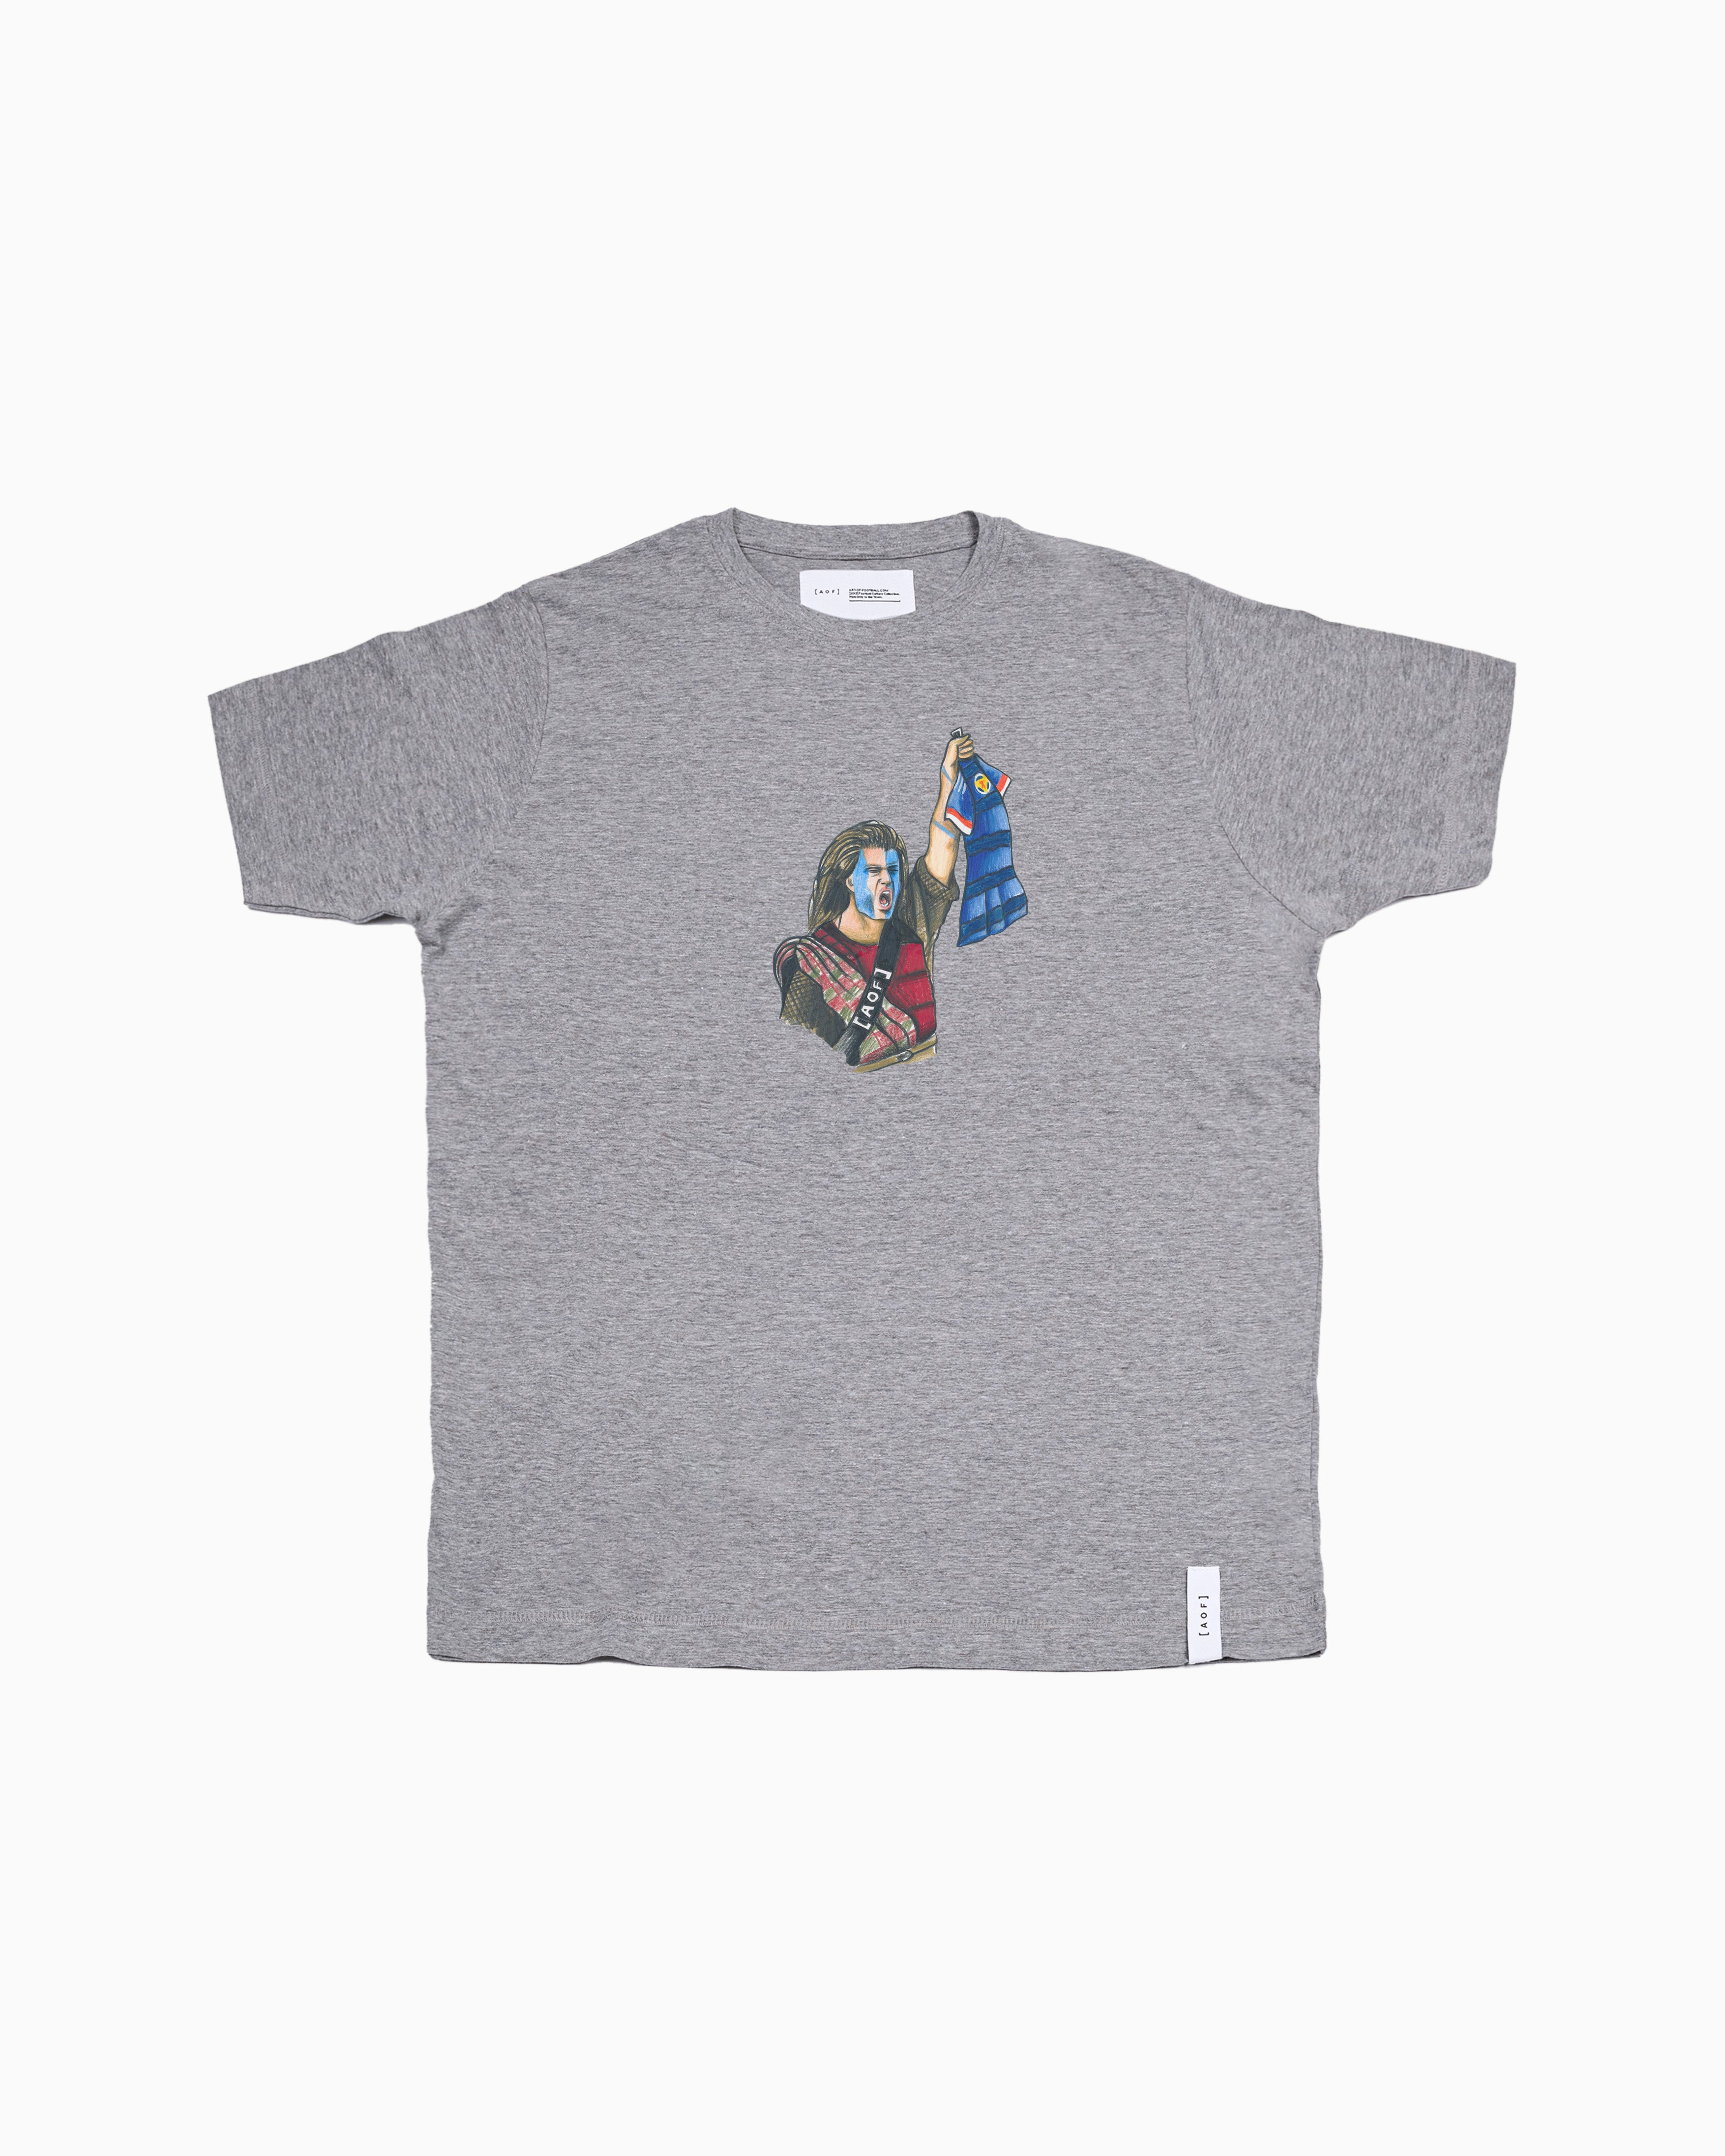 Braveheart - Tee or Sweat